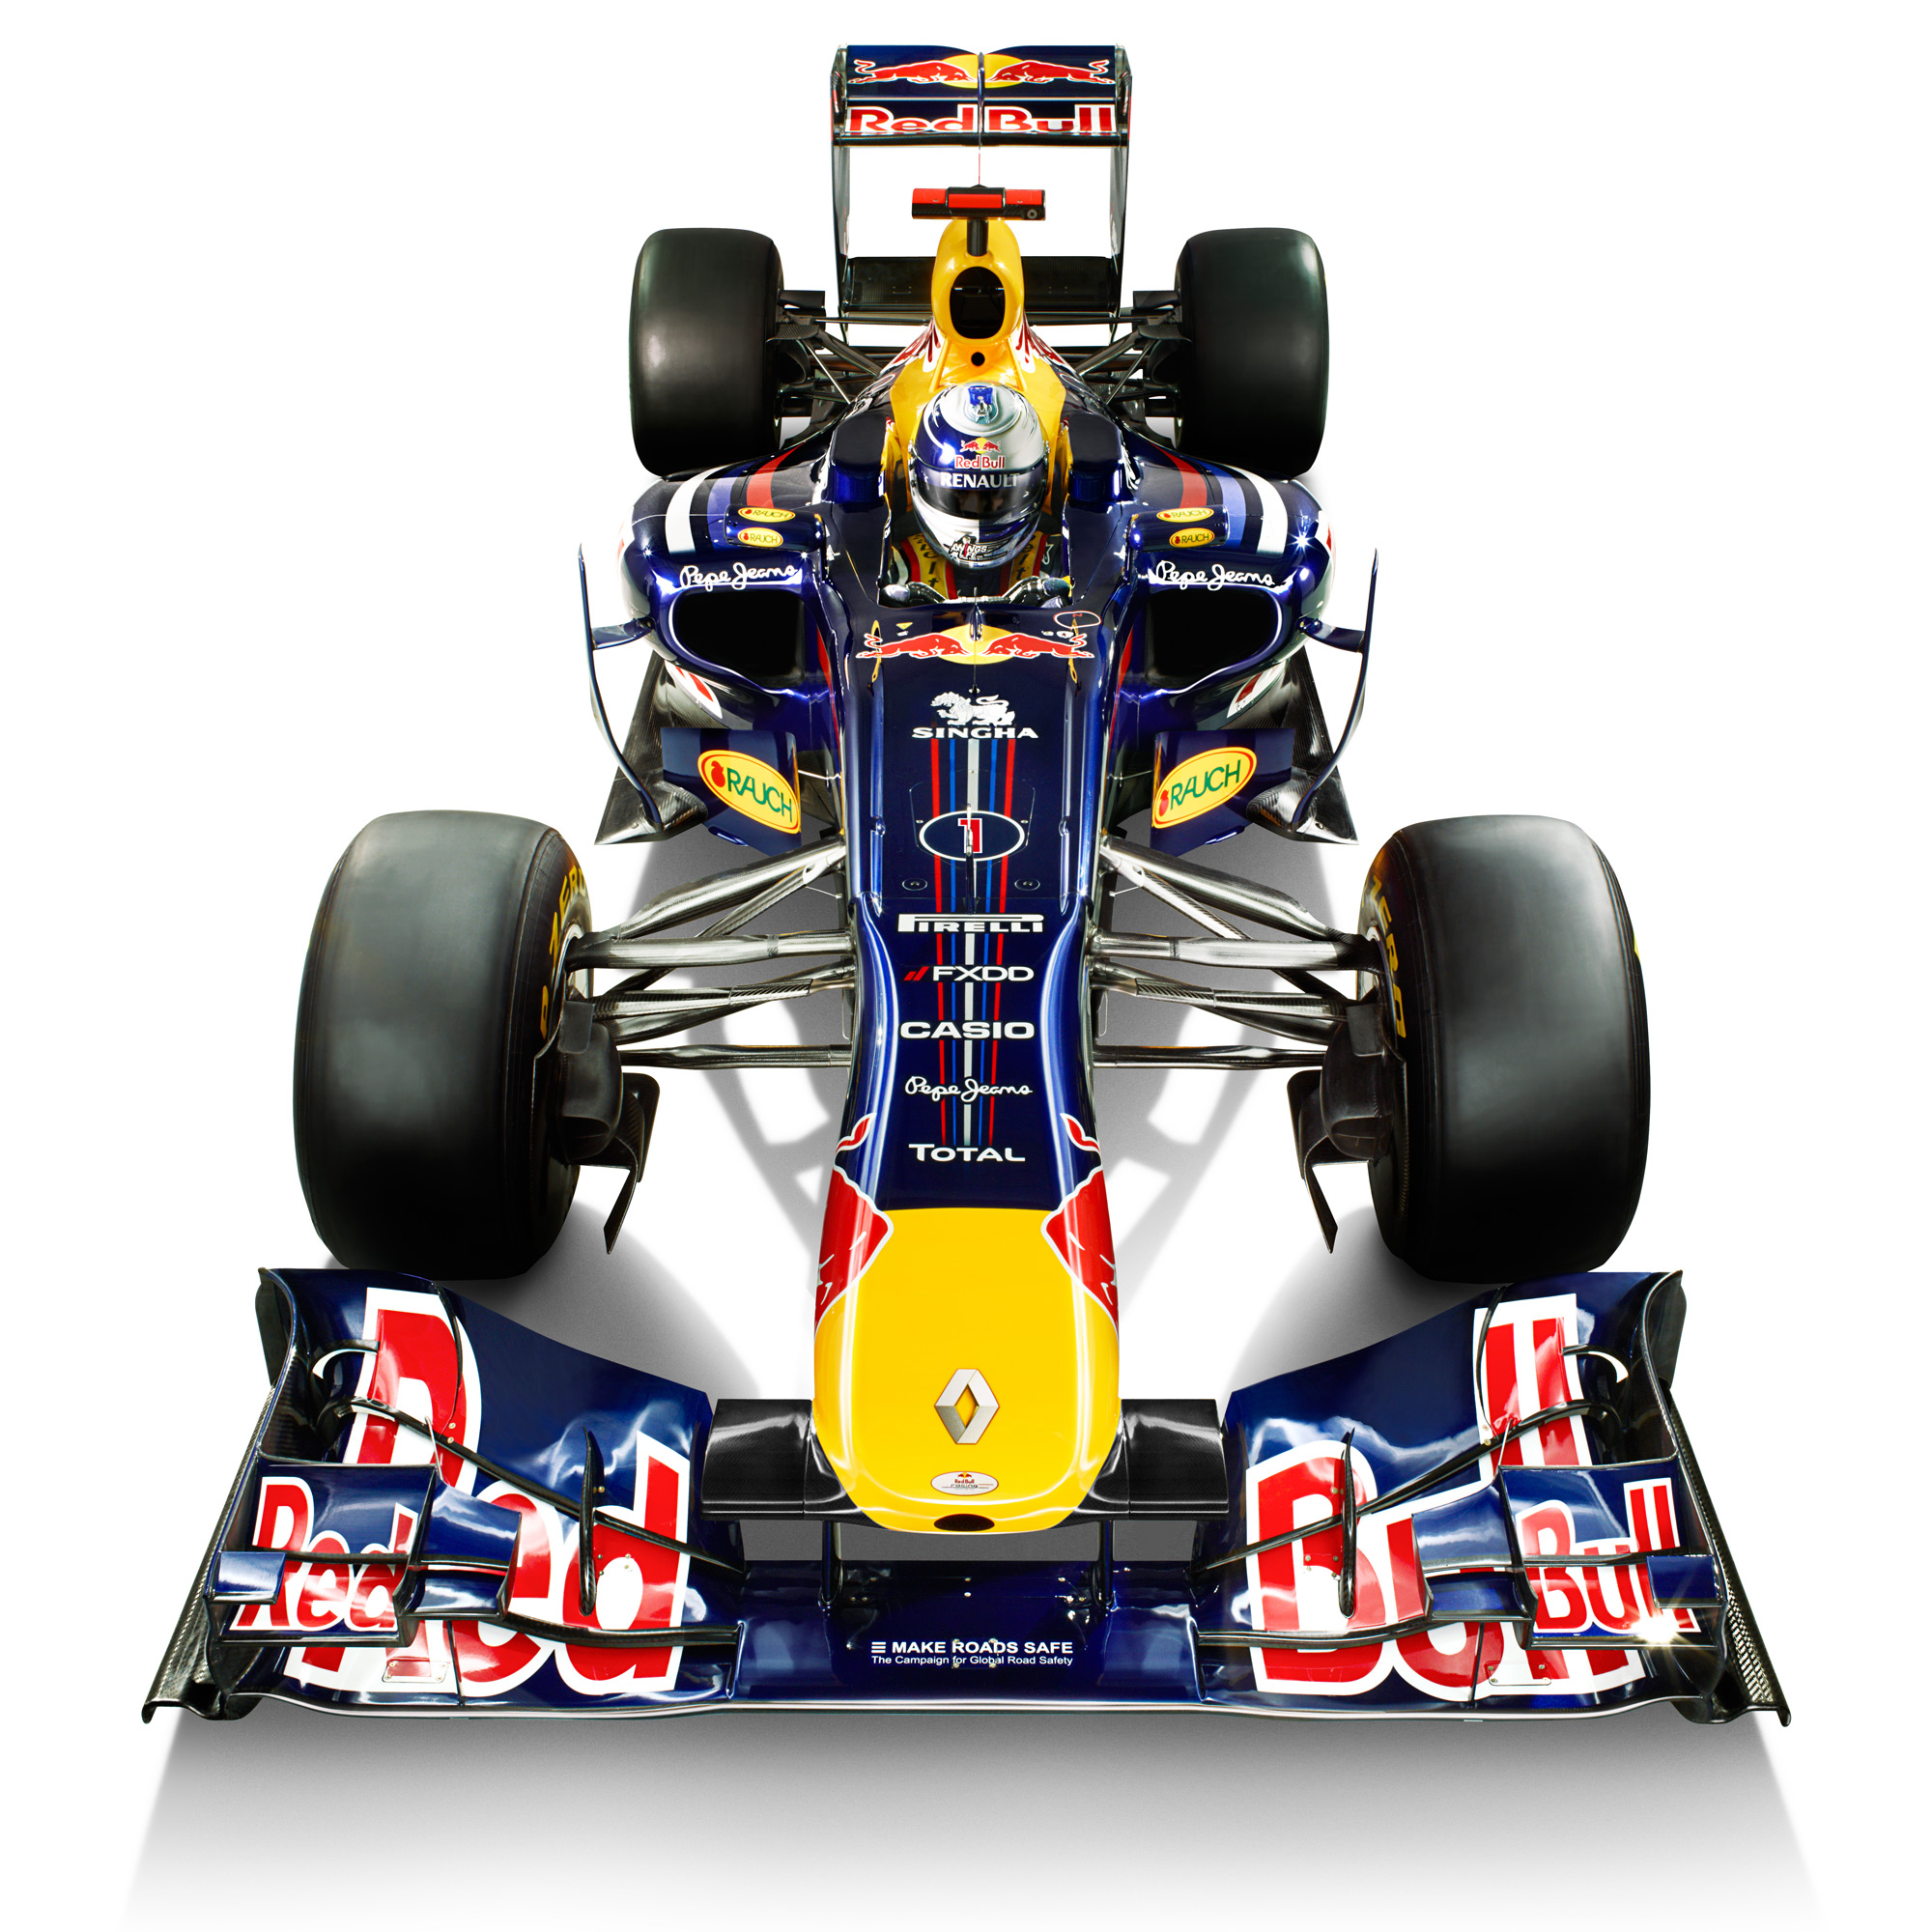 red bull racing unveils 2011 f1 car. Black Bedroom Furniture Sets. Home Design Ideas